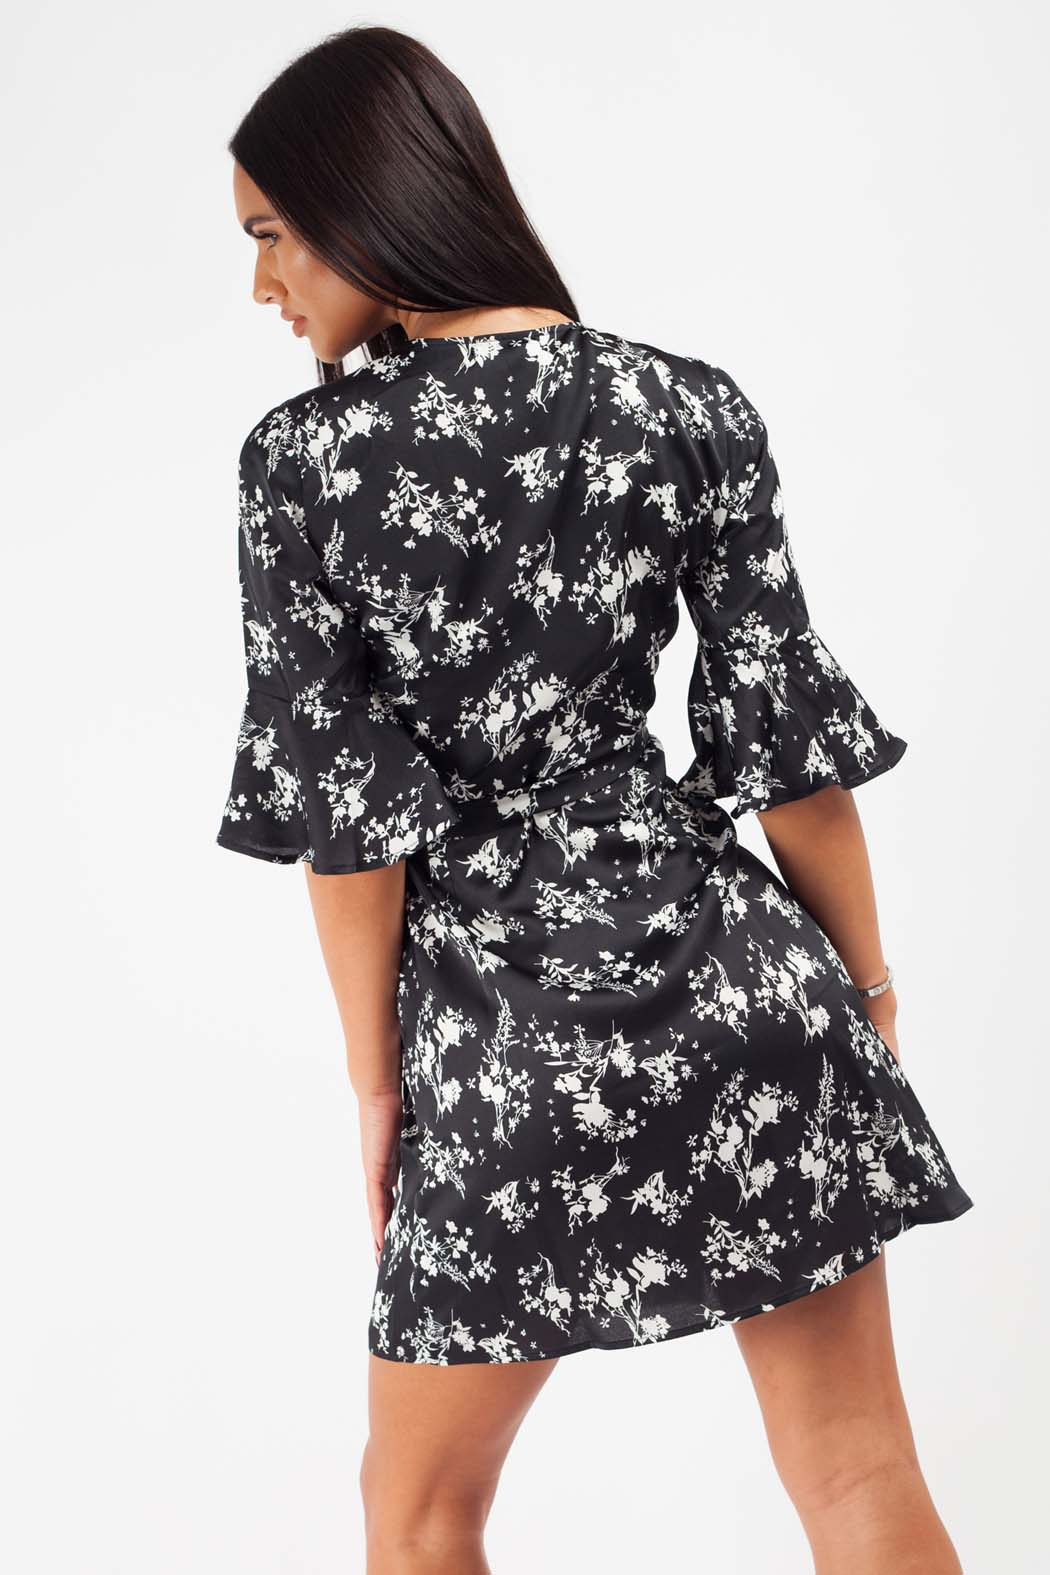 Bloom Black Floral Satin Wrap Mini Dress